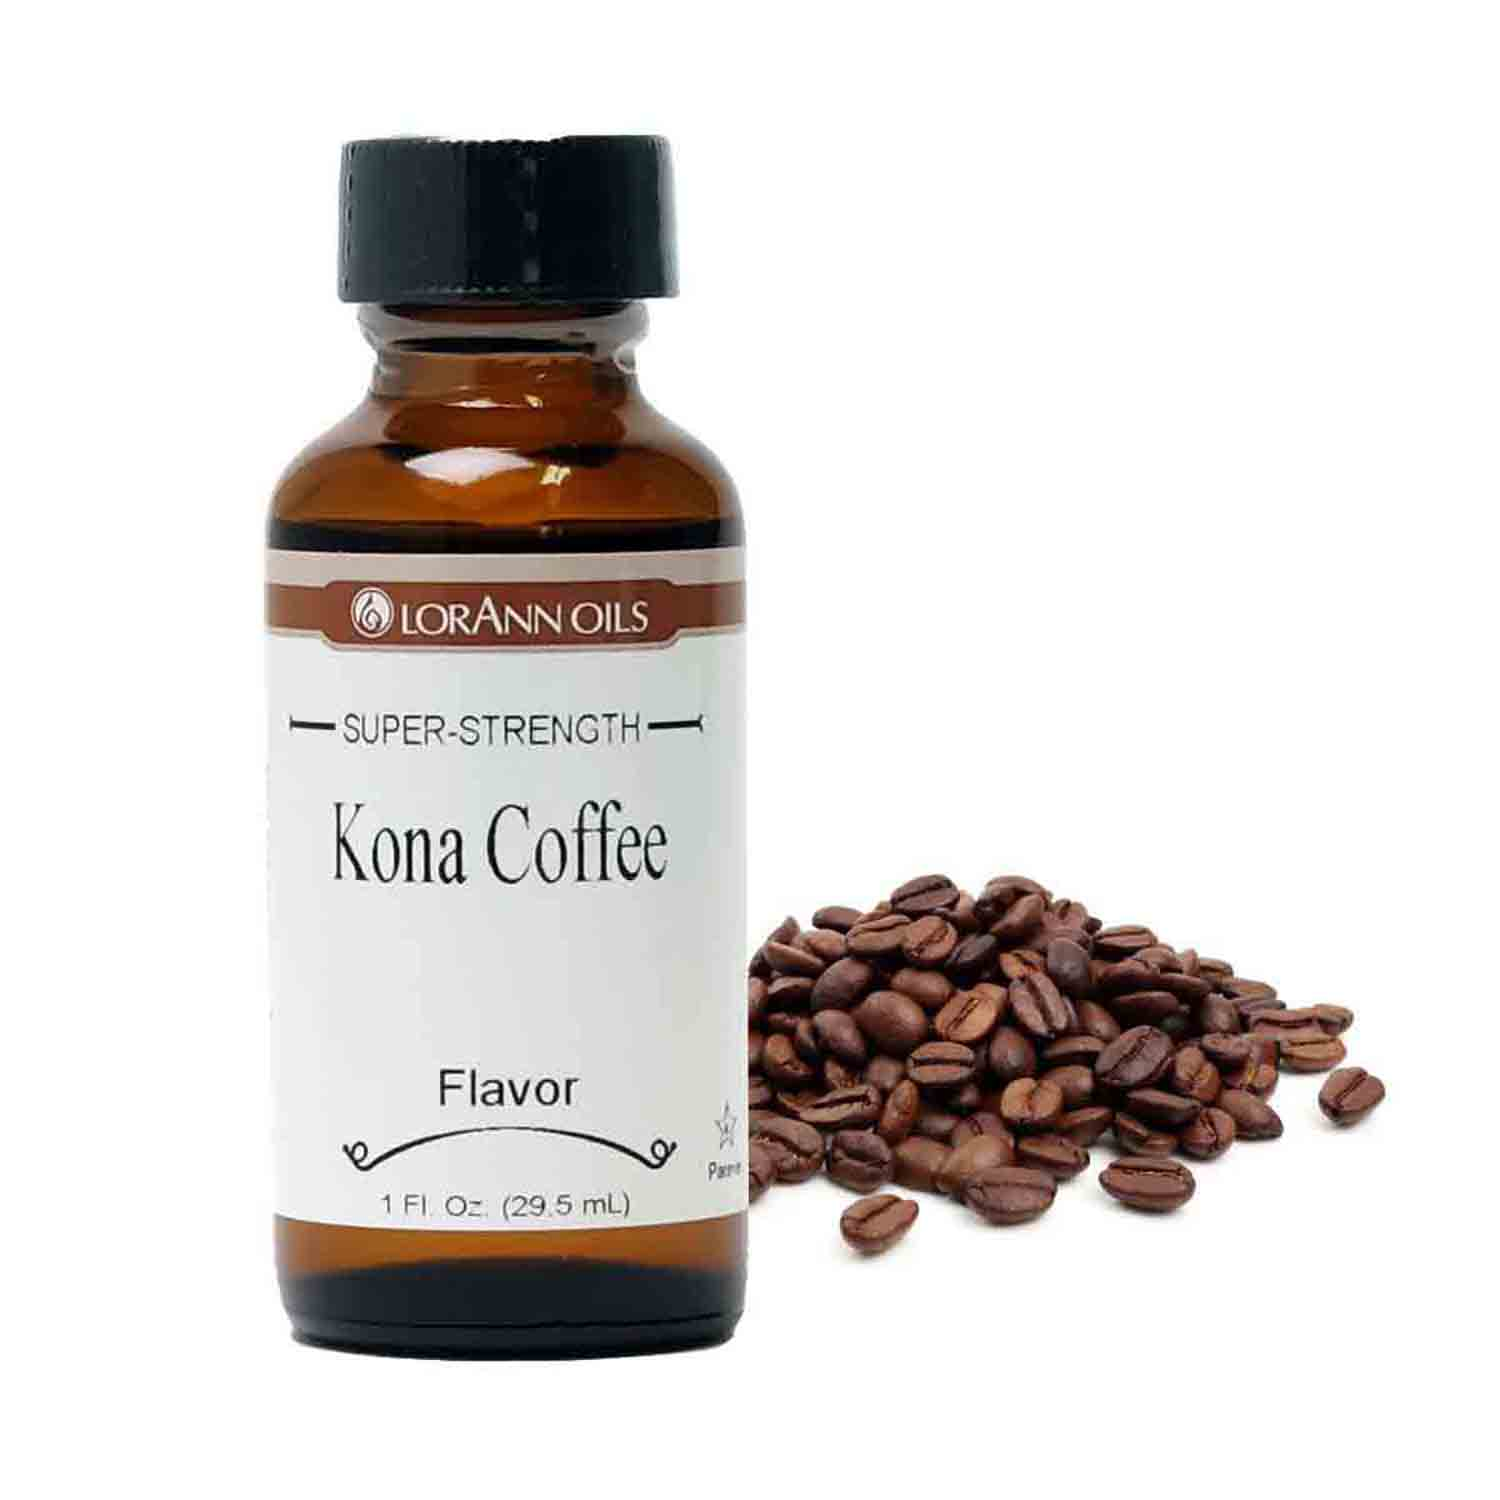 Kona Coffee Super-Strength Flavor